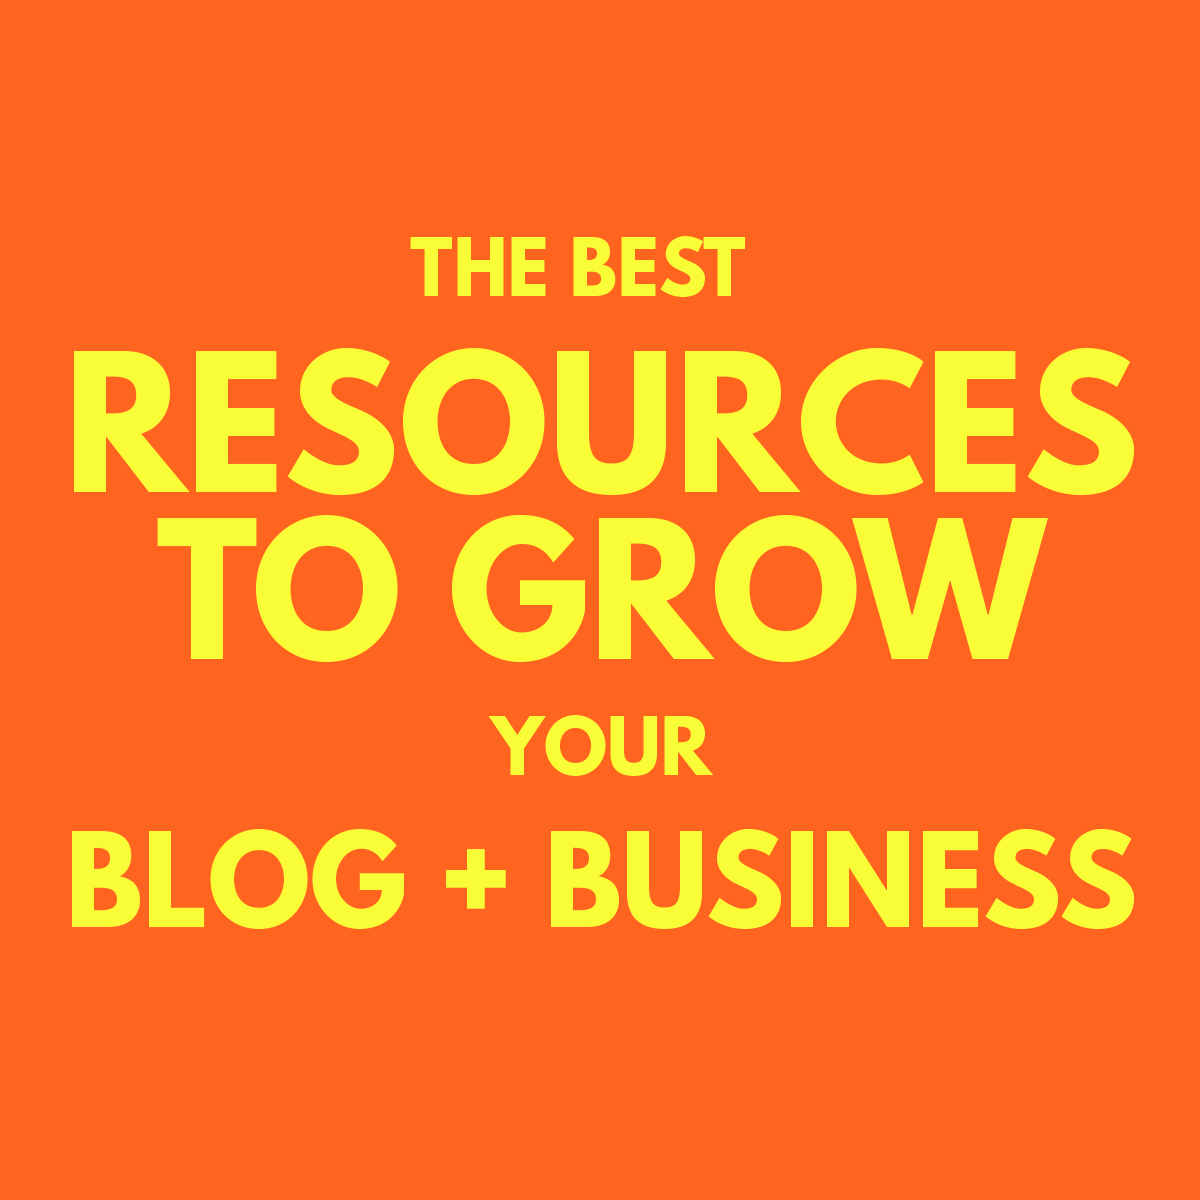 how to write a business plan free How to write a business plan for an outpatient medical practice  or, if you just want to see what a completed business plan looks like, check out our library of over 500 free sample business plans 3 rules for writing a business plan: 1 keep it short.